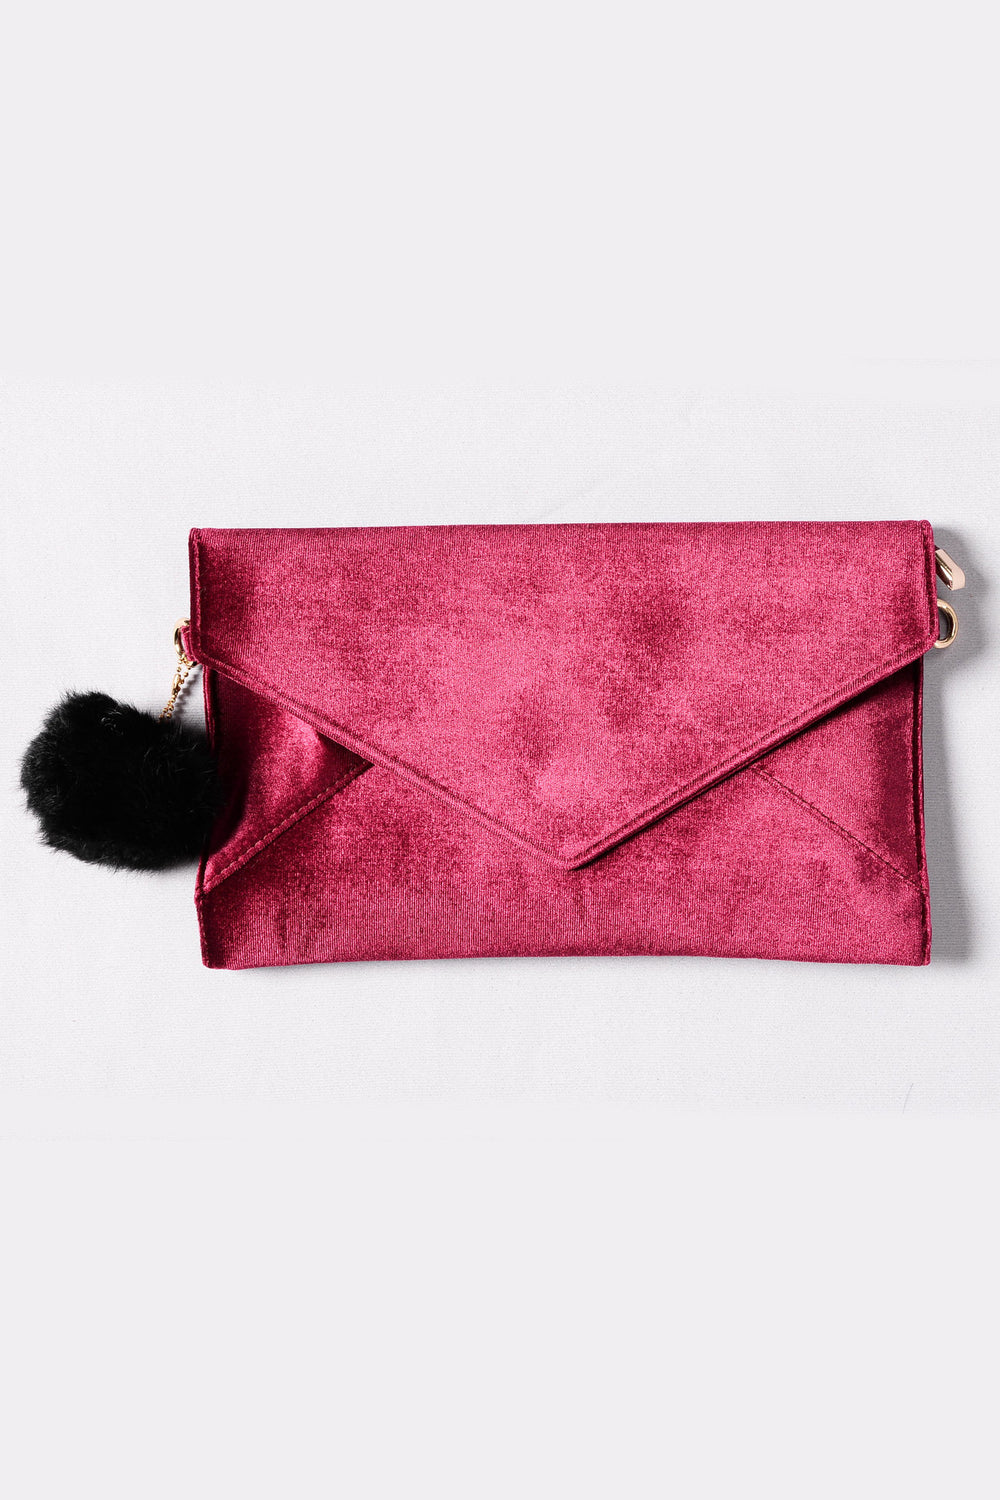 Sealed With A Kiss Clutch - Burgundy